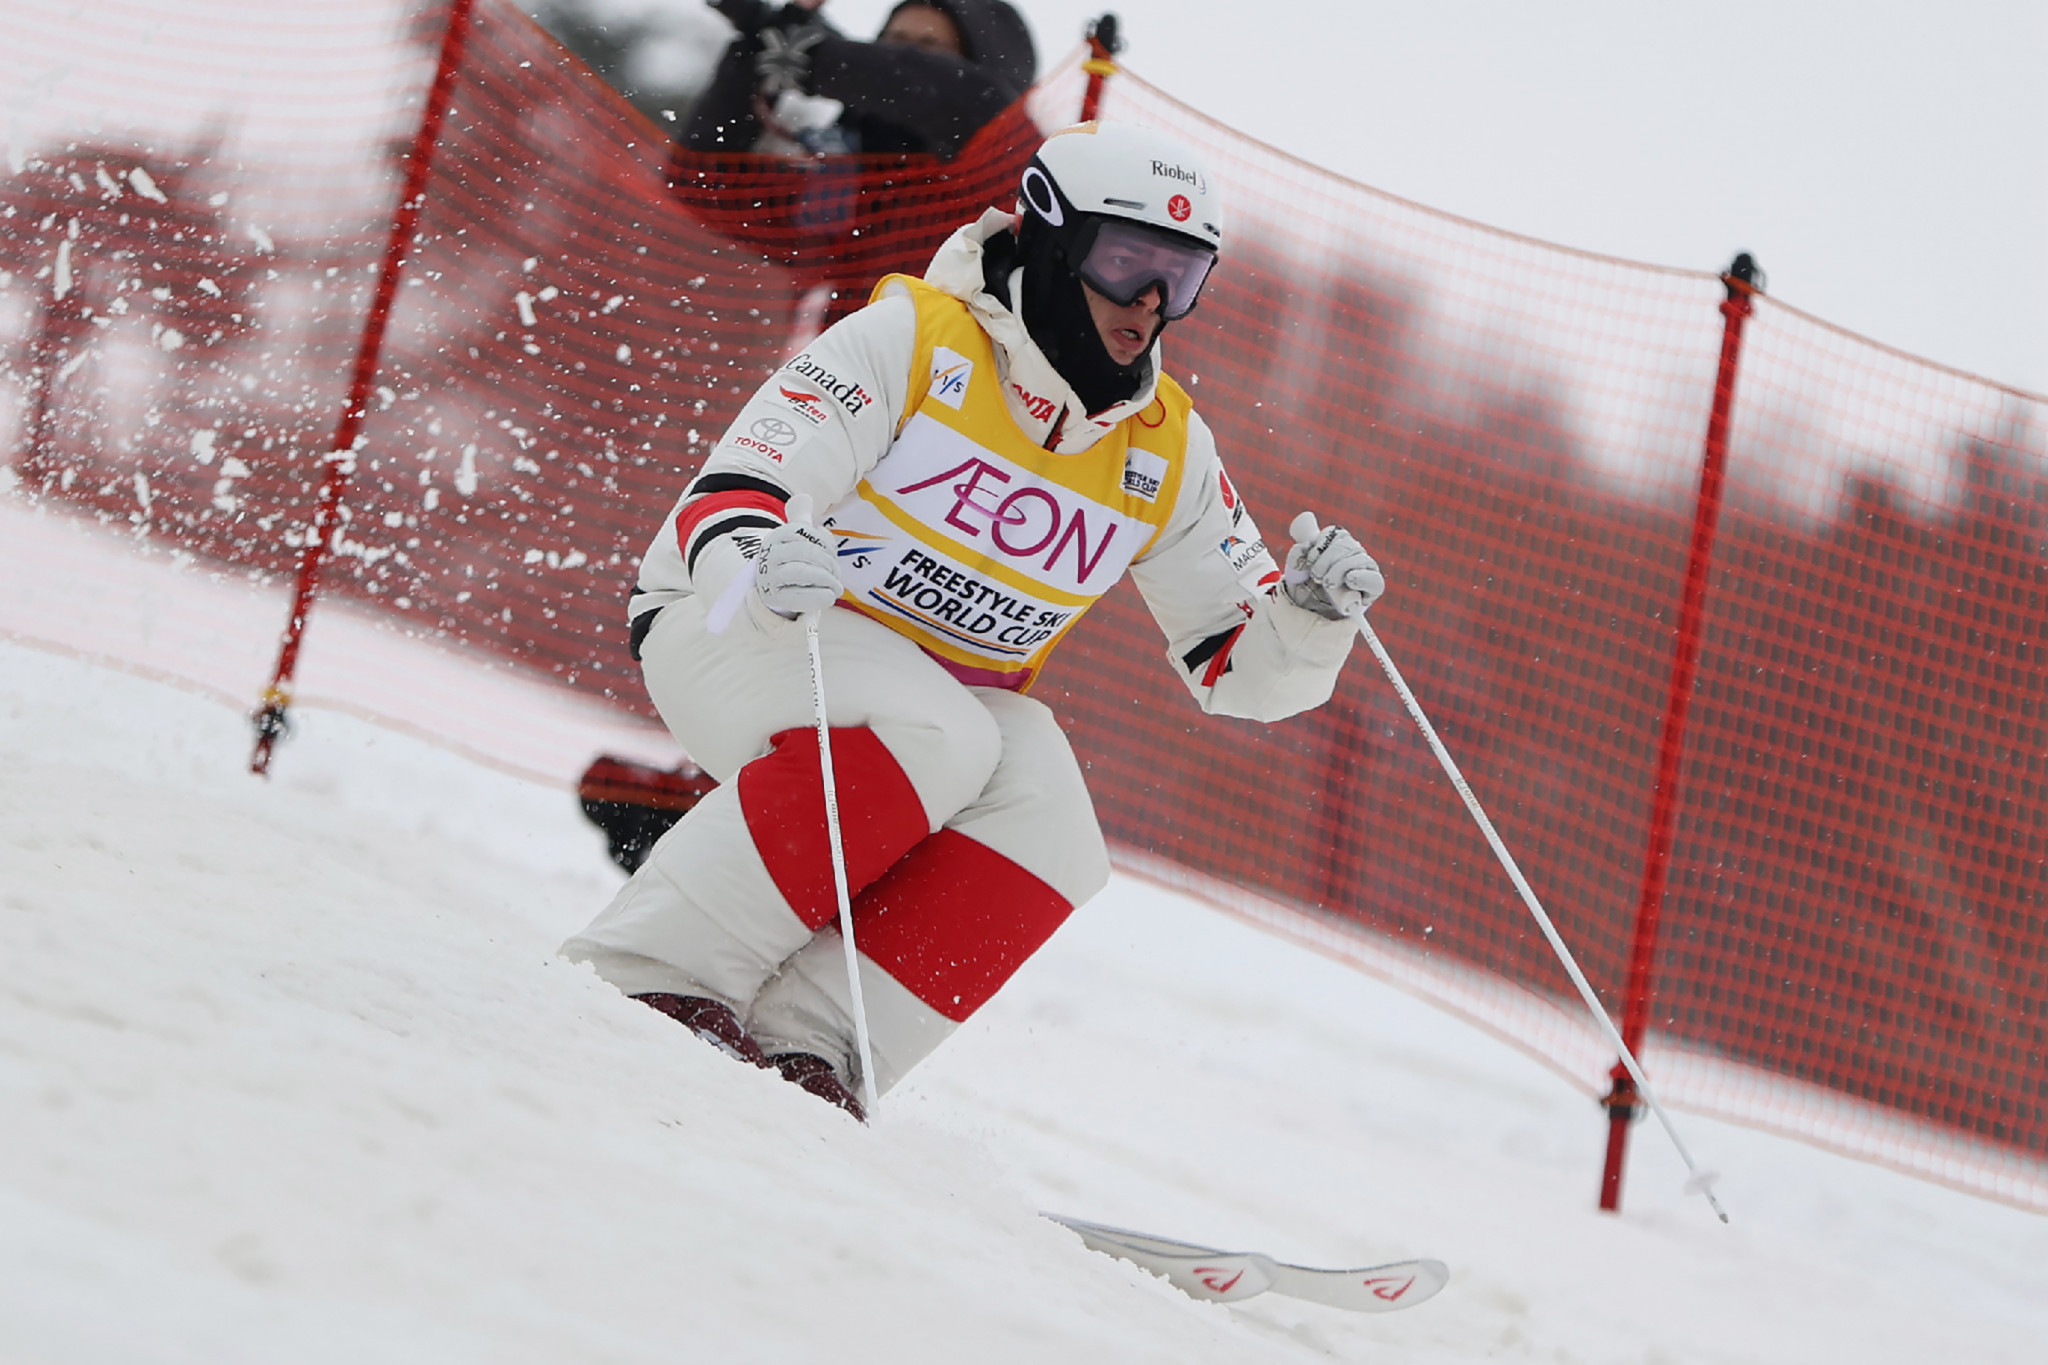 Moguls star Kingsbury crowned as Canada's snow sport athlete of the year